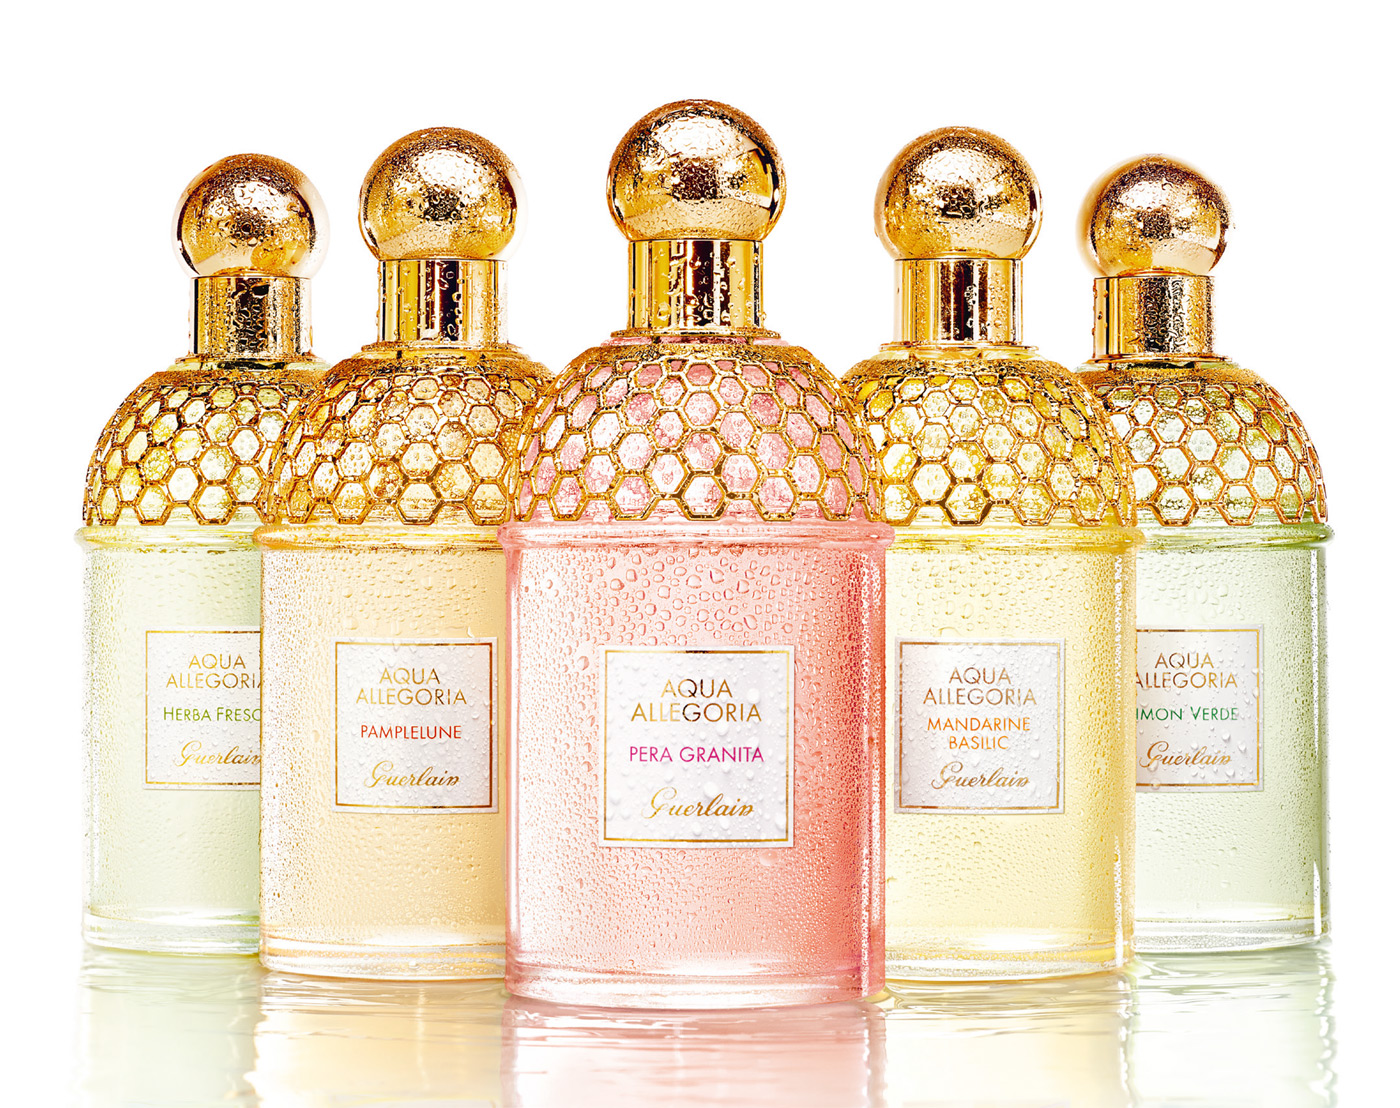 aqua allegoria pera granita guerlain perfume a new fragrance for women 2016. Black Bedroom Furniture Sets. Home Design Ideas